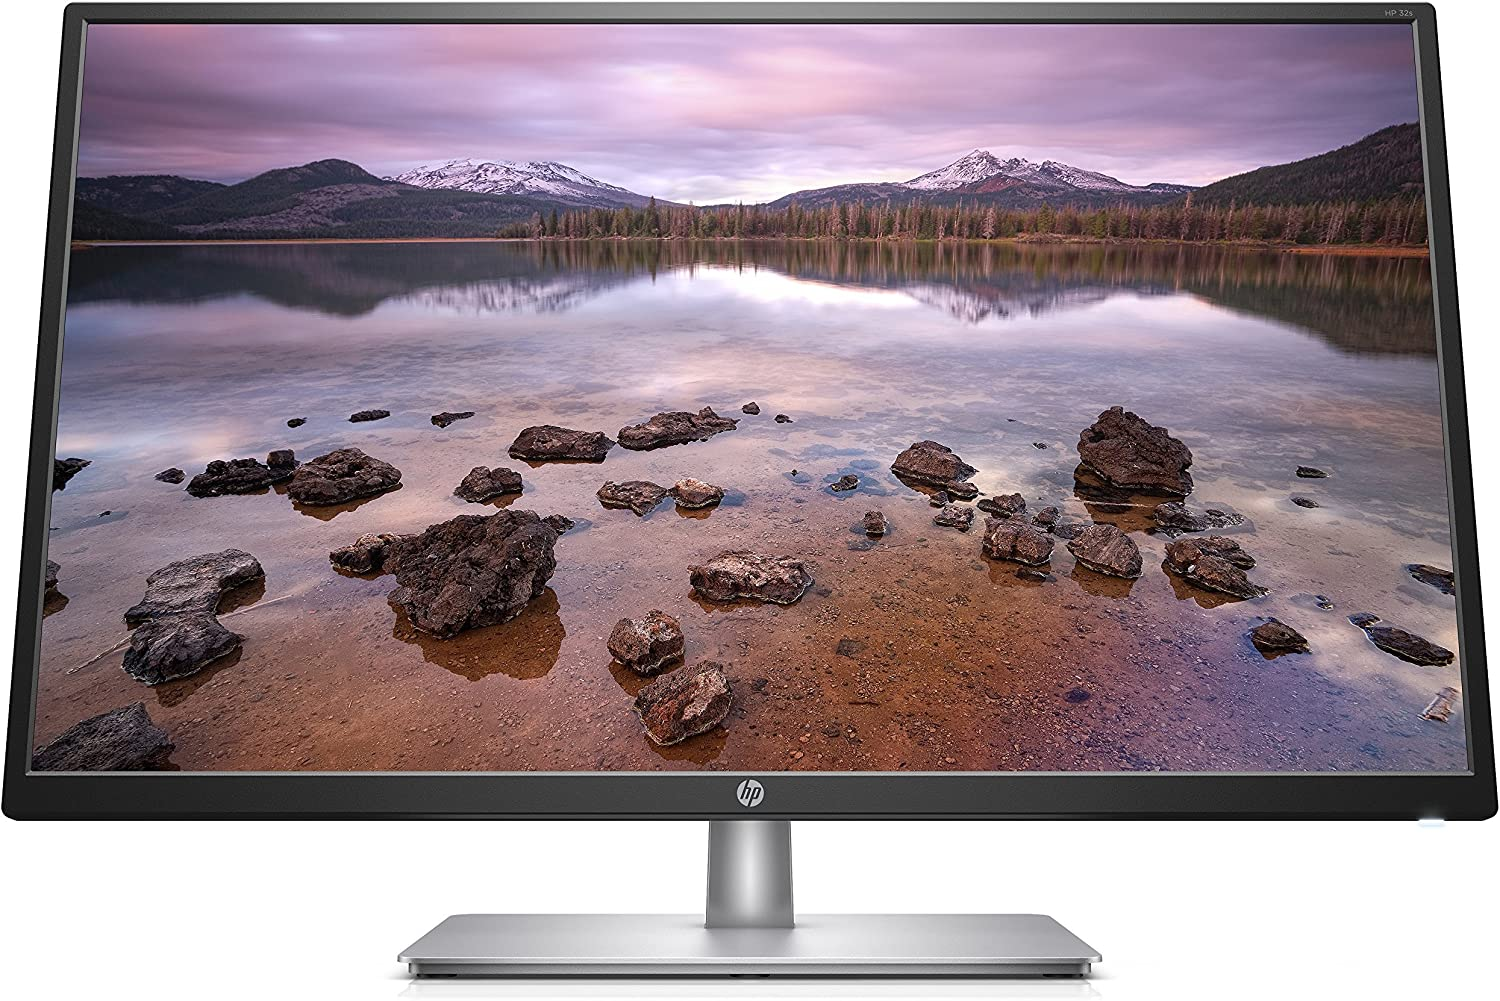 HP 2UD96AA#ABA 32-inch FHD IPS Monitor with Tilt Adjustment and Anti-Glare Panel (32s, Black/Silver) (Renewed)